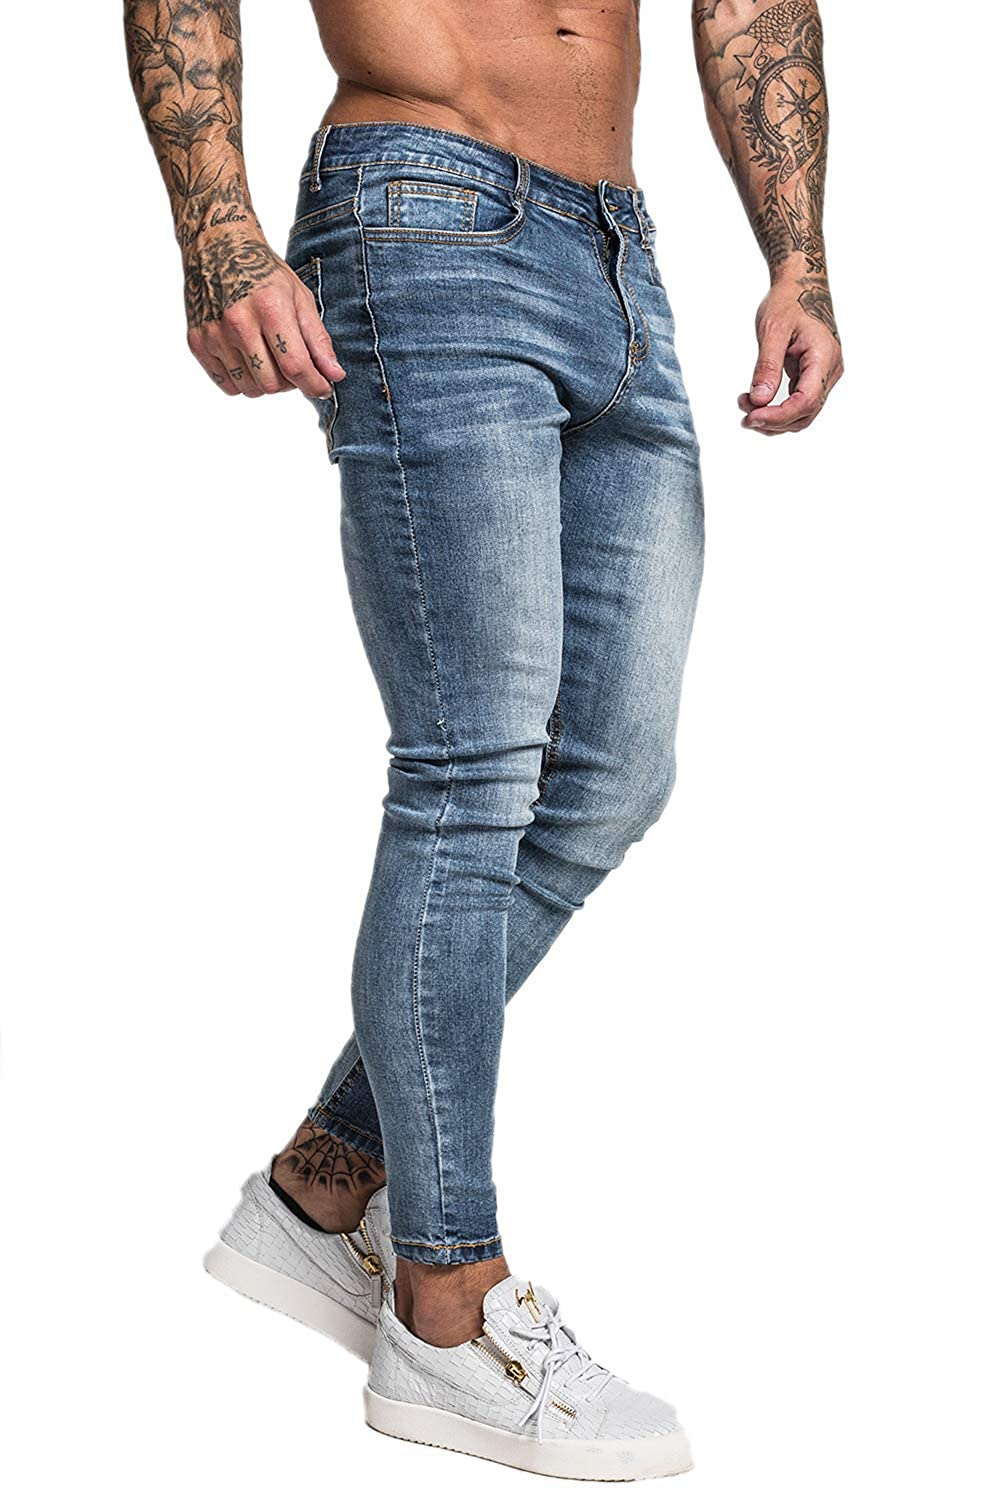 Gingtto Men's Skinny Jeans Super Stretch Ripped Jeans Slim Fit